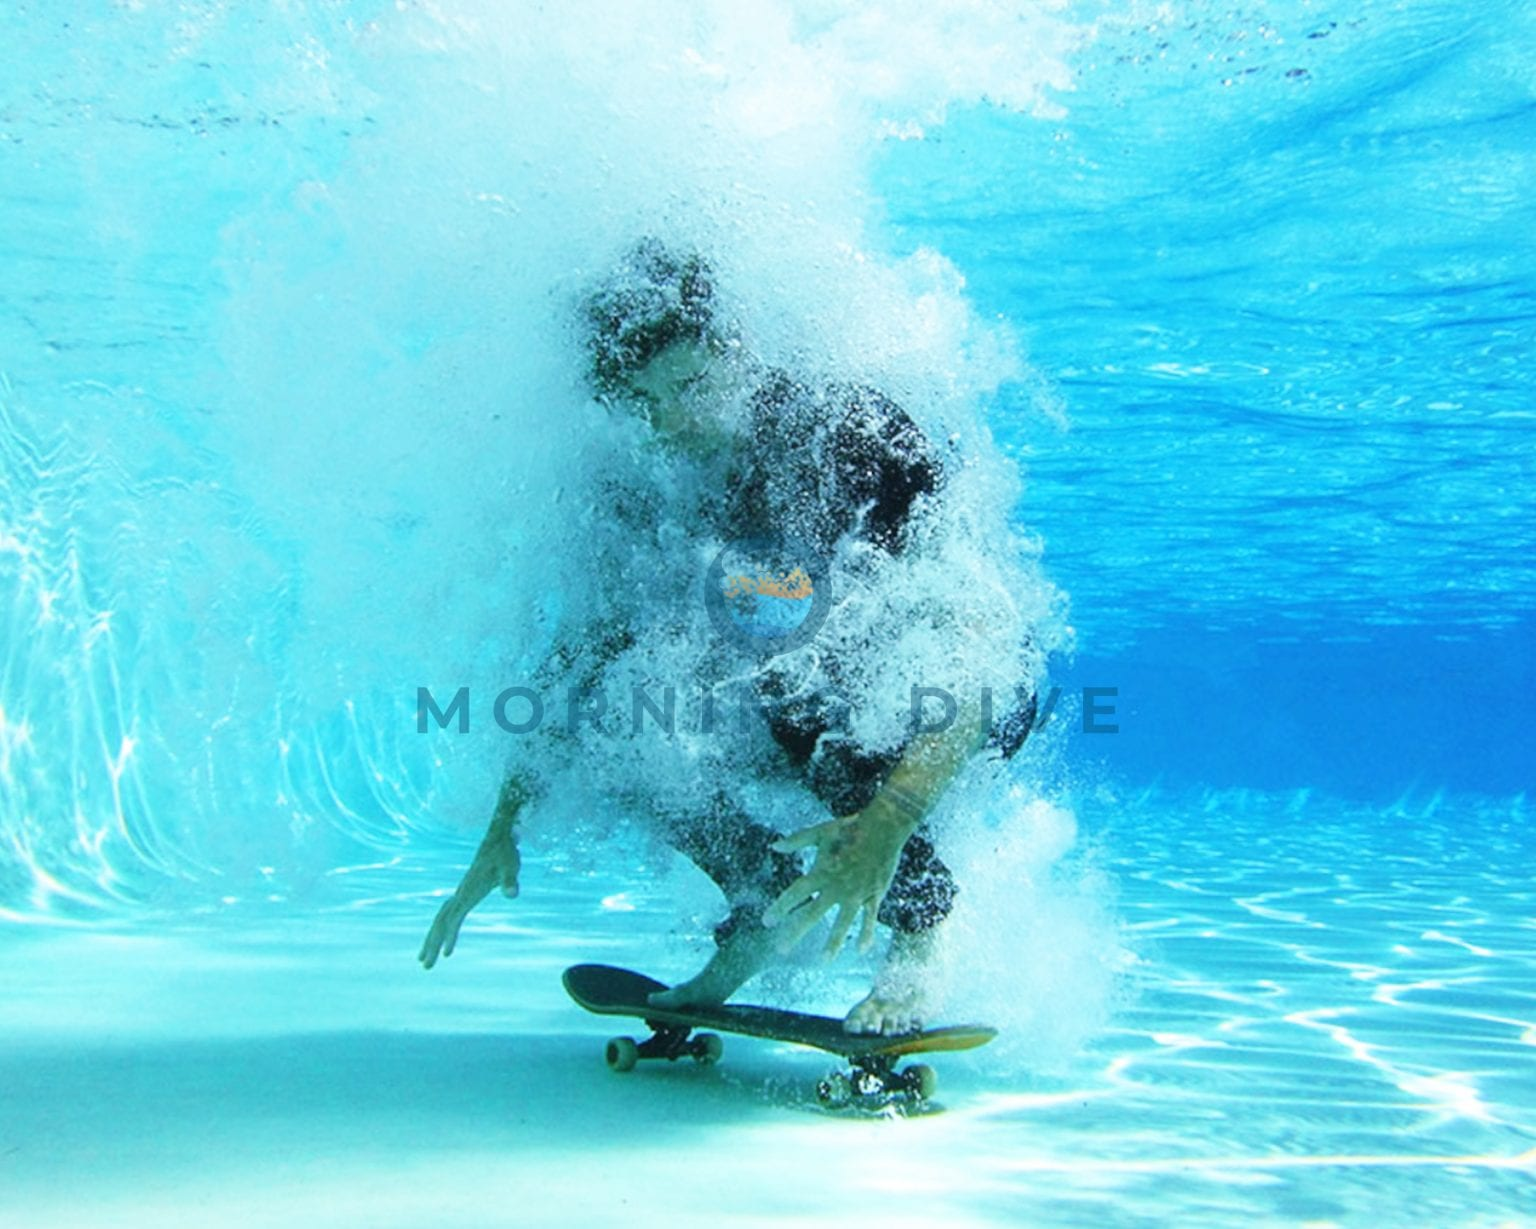 underwater photography skater